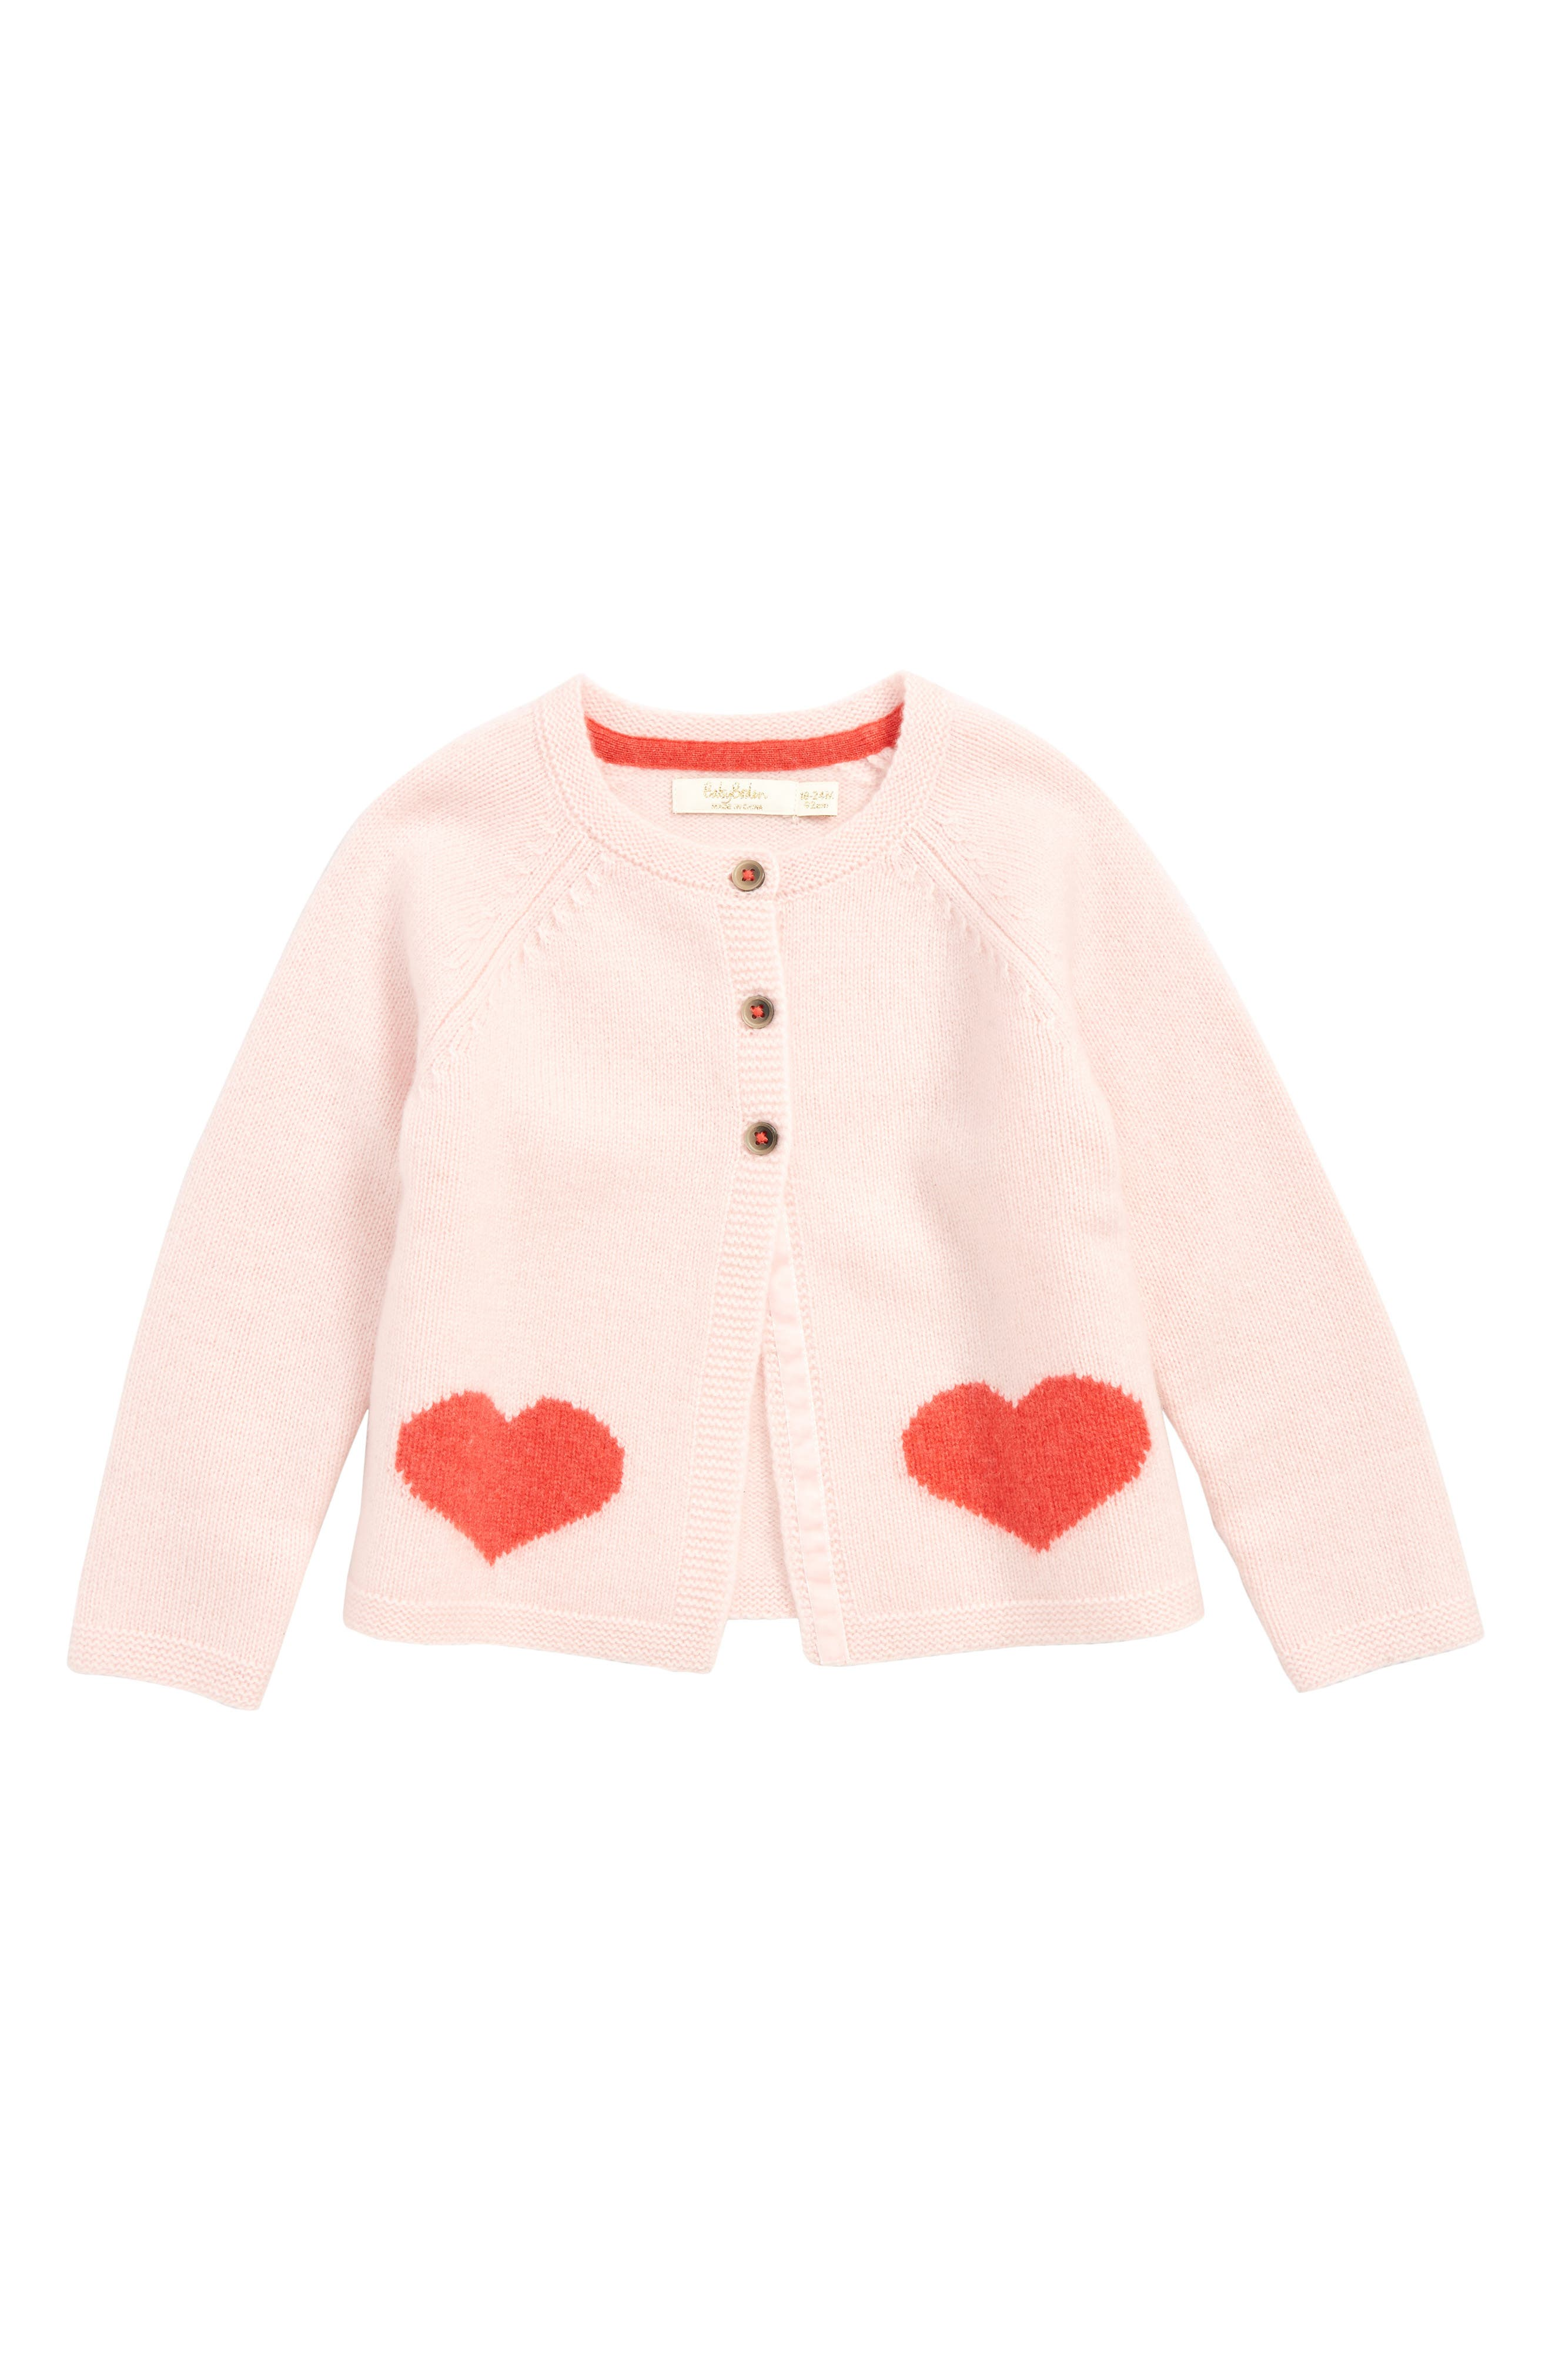 Cashmere Cardigan, Main, color, PROVENCE DUSTY PINK HEARTS